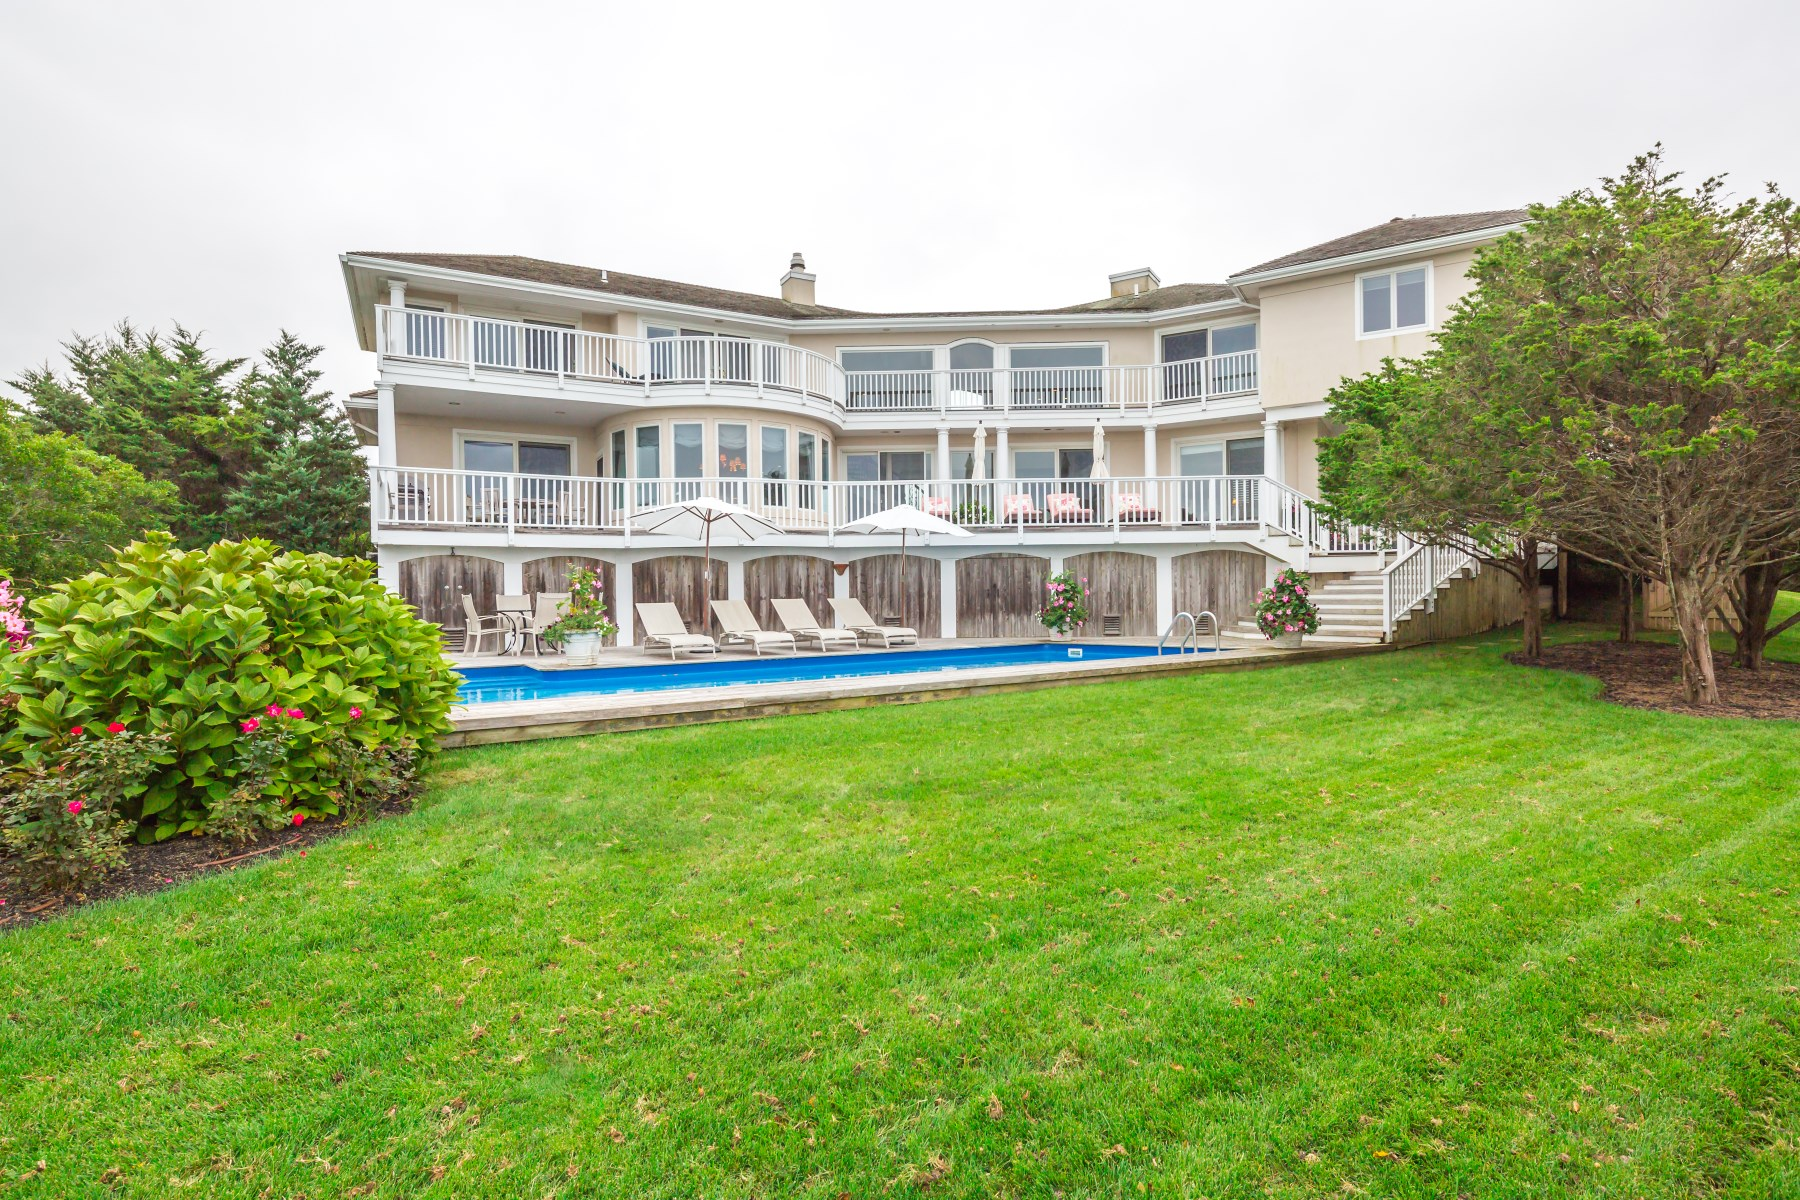 Single Family Home for Rent at Private Palazzo on Mecox Bay with Dock 86 Dune Rd Bridgehampton South, Bridgehampton, New York, 11932 United States